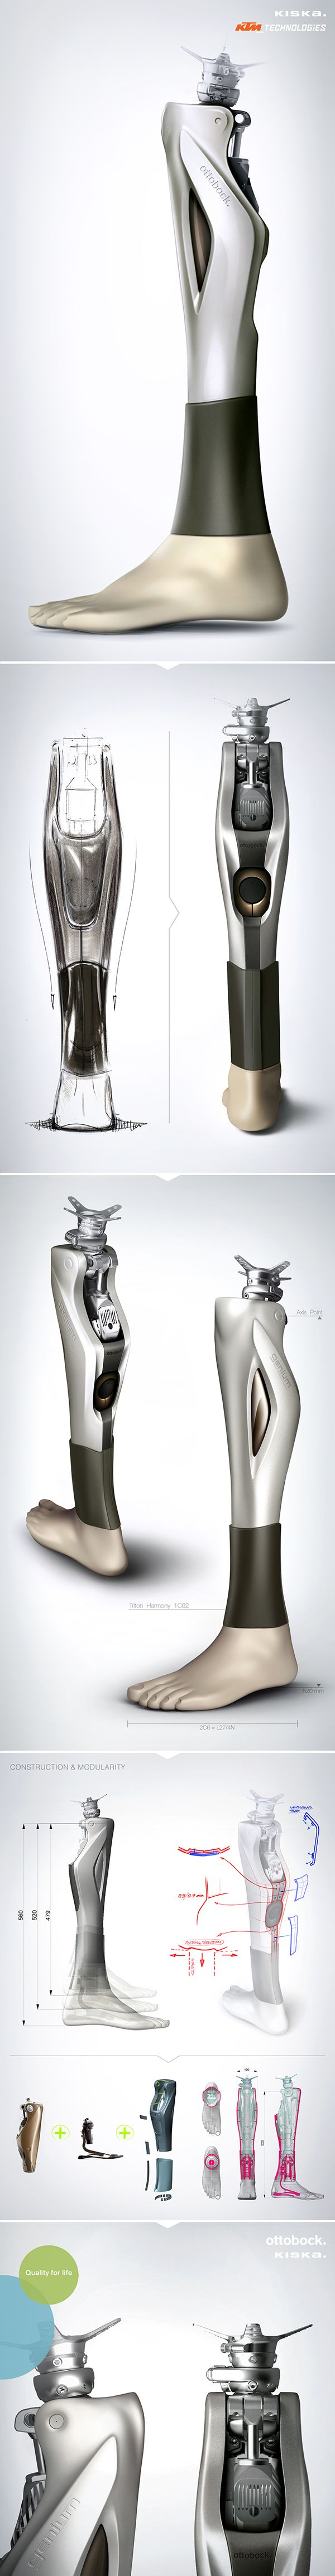 Ottobock Prosthetic Cover / Designed by KISKA on Industrial Design Served